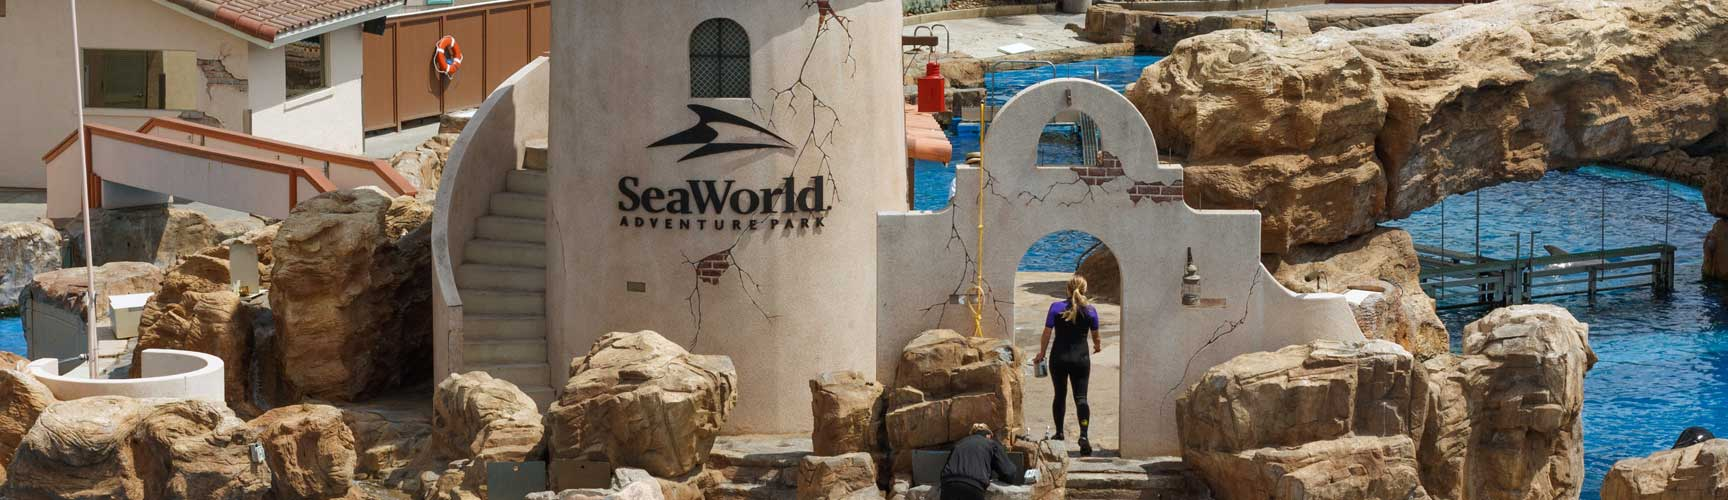 Get Tickets to SeaWorld Adventure Park.